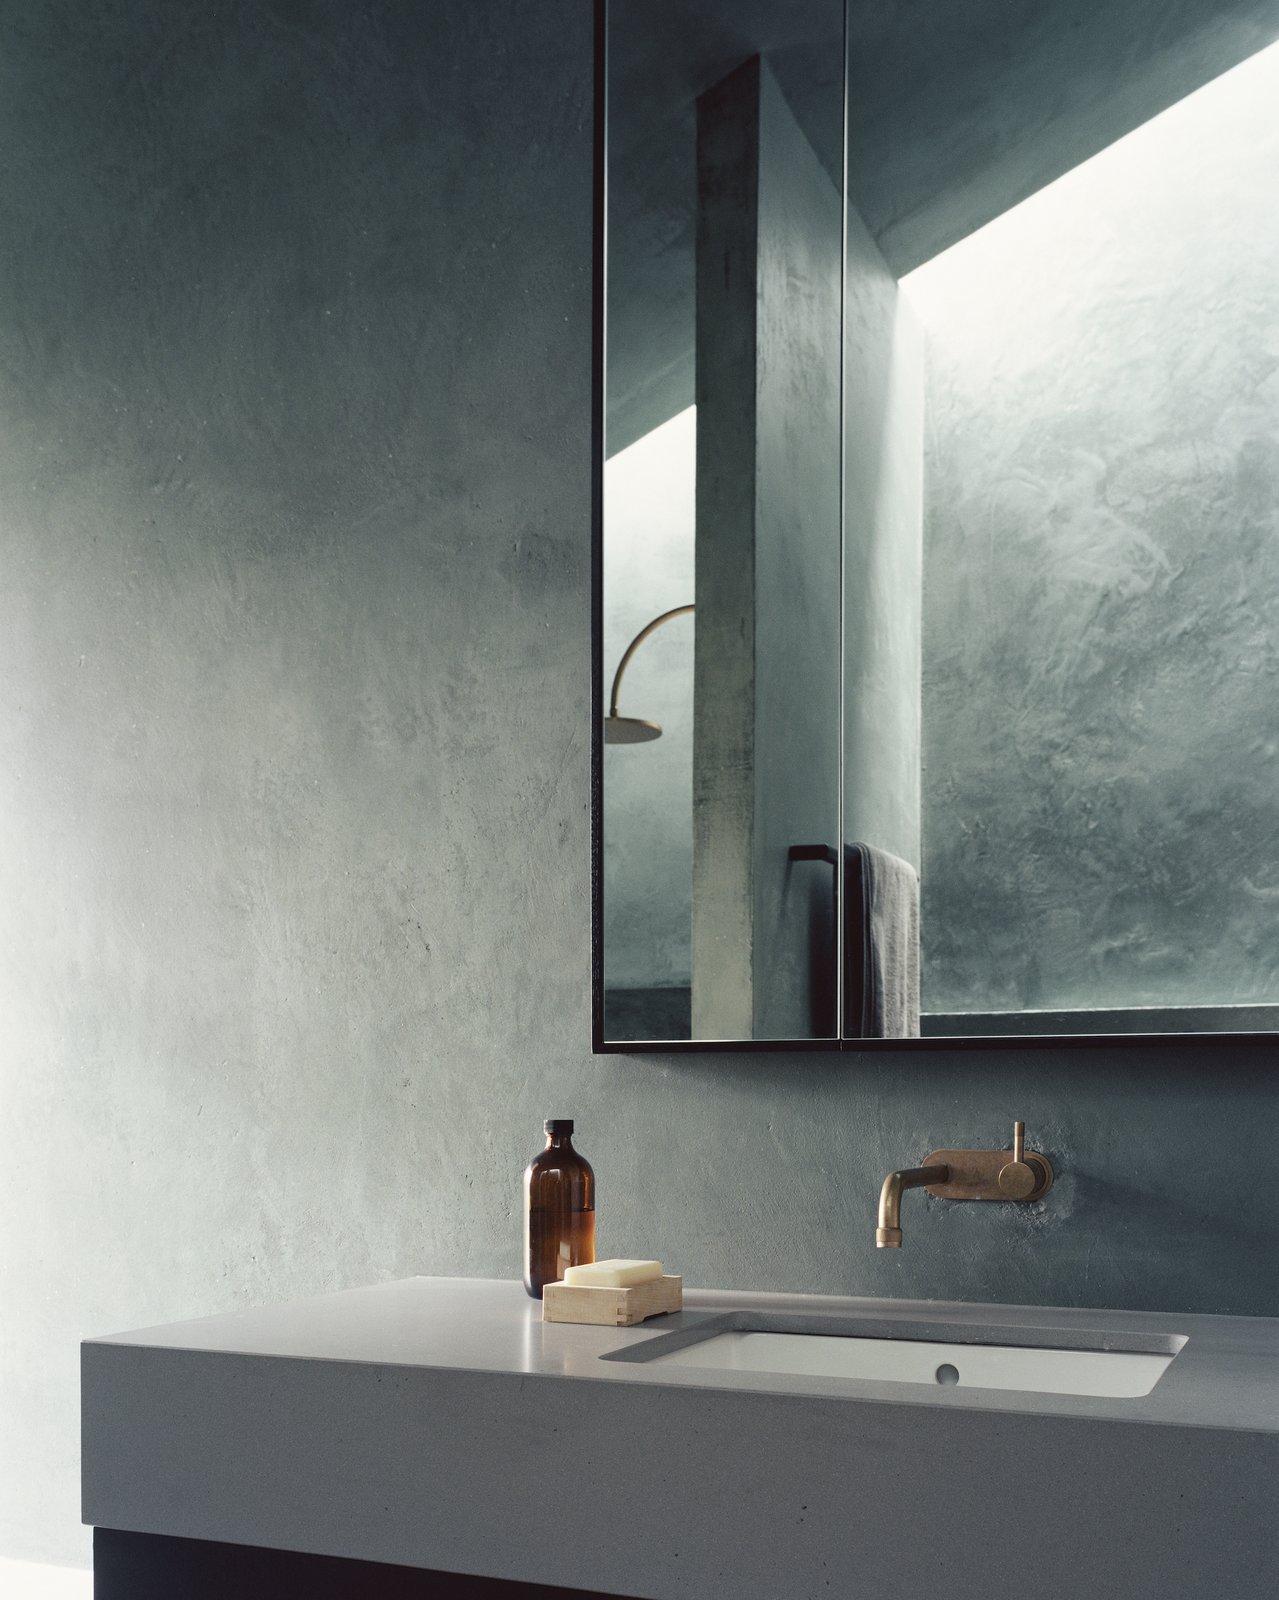 Bathroom of Two Sheds by Dreamer.